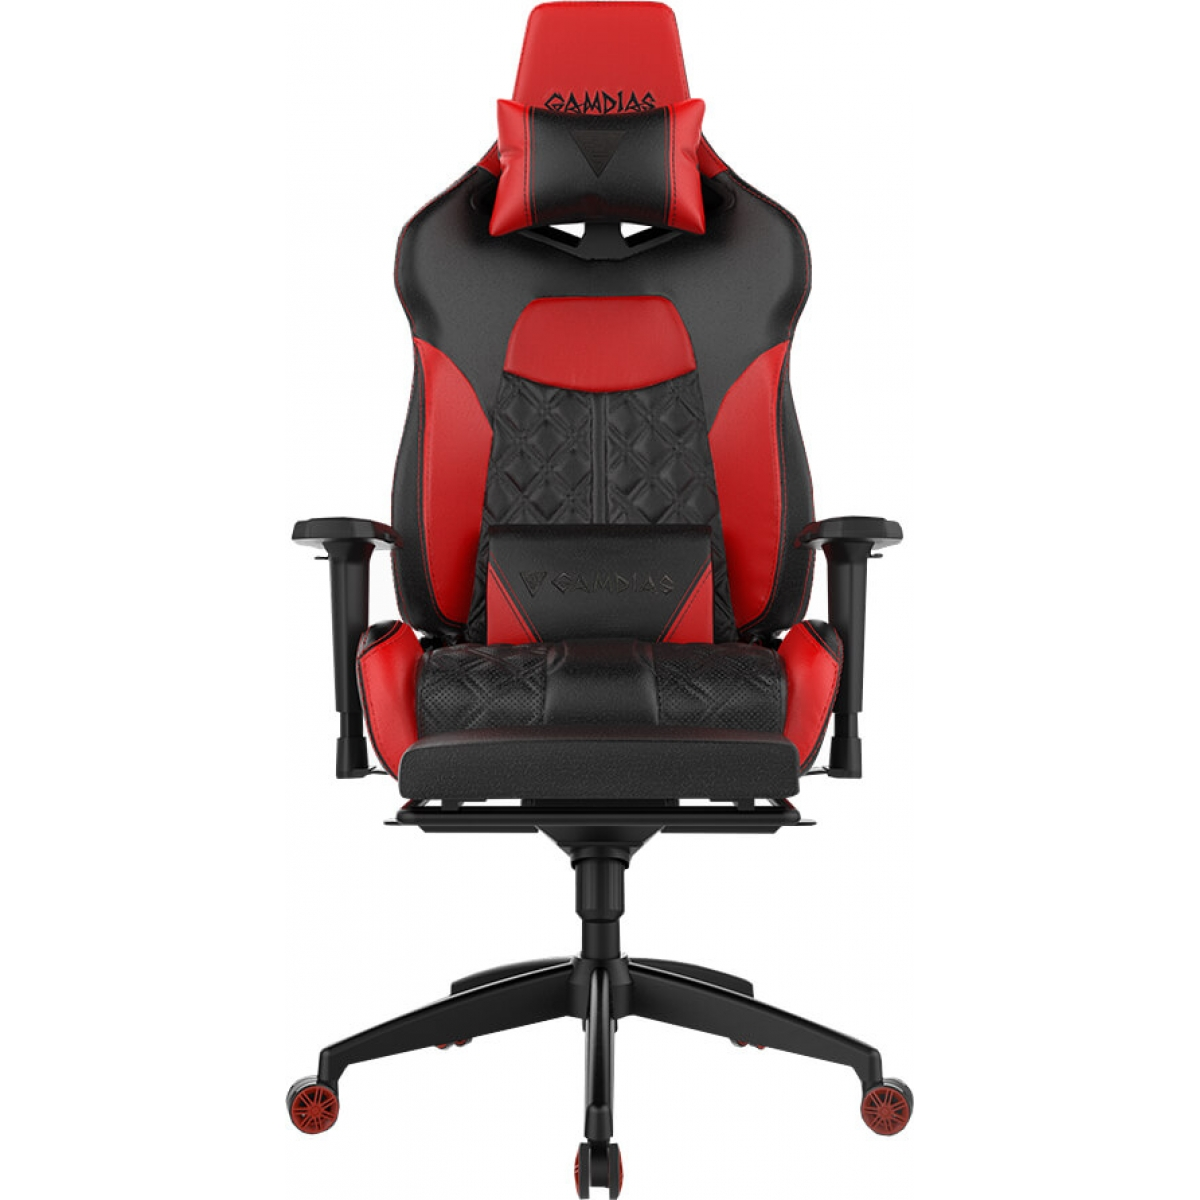 Cadeira Gamer Gamdias Achilles RGB P1 L, Black-Red, GD-ACHILLESP1LBR